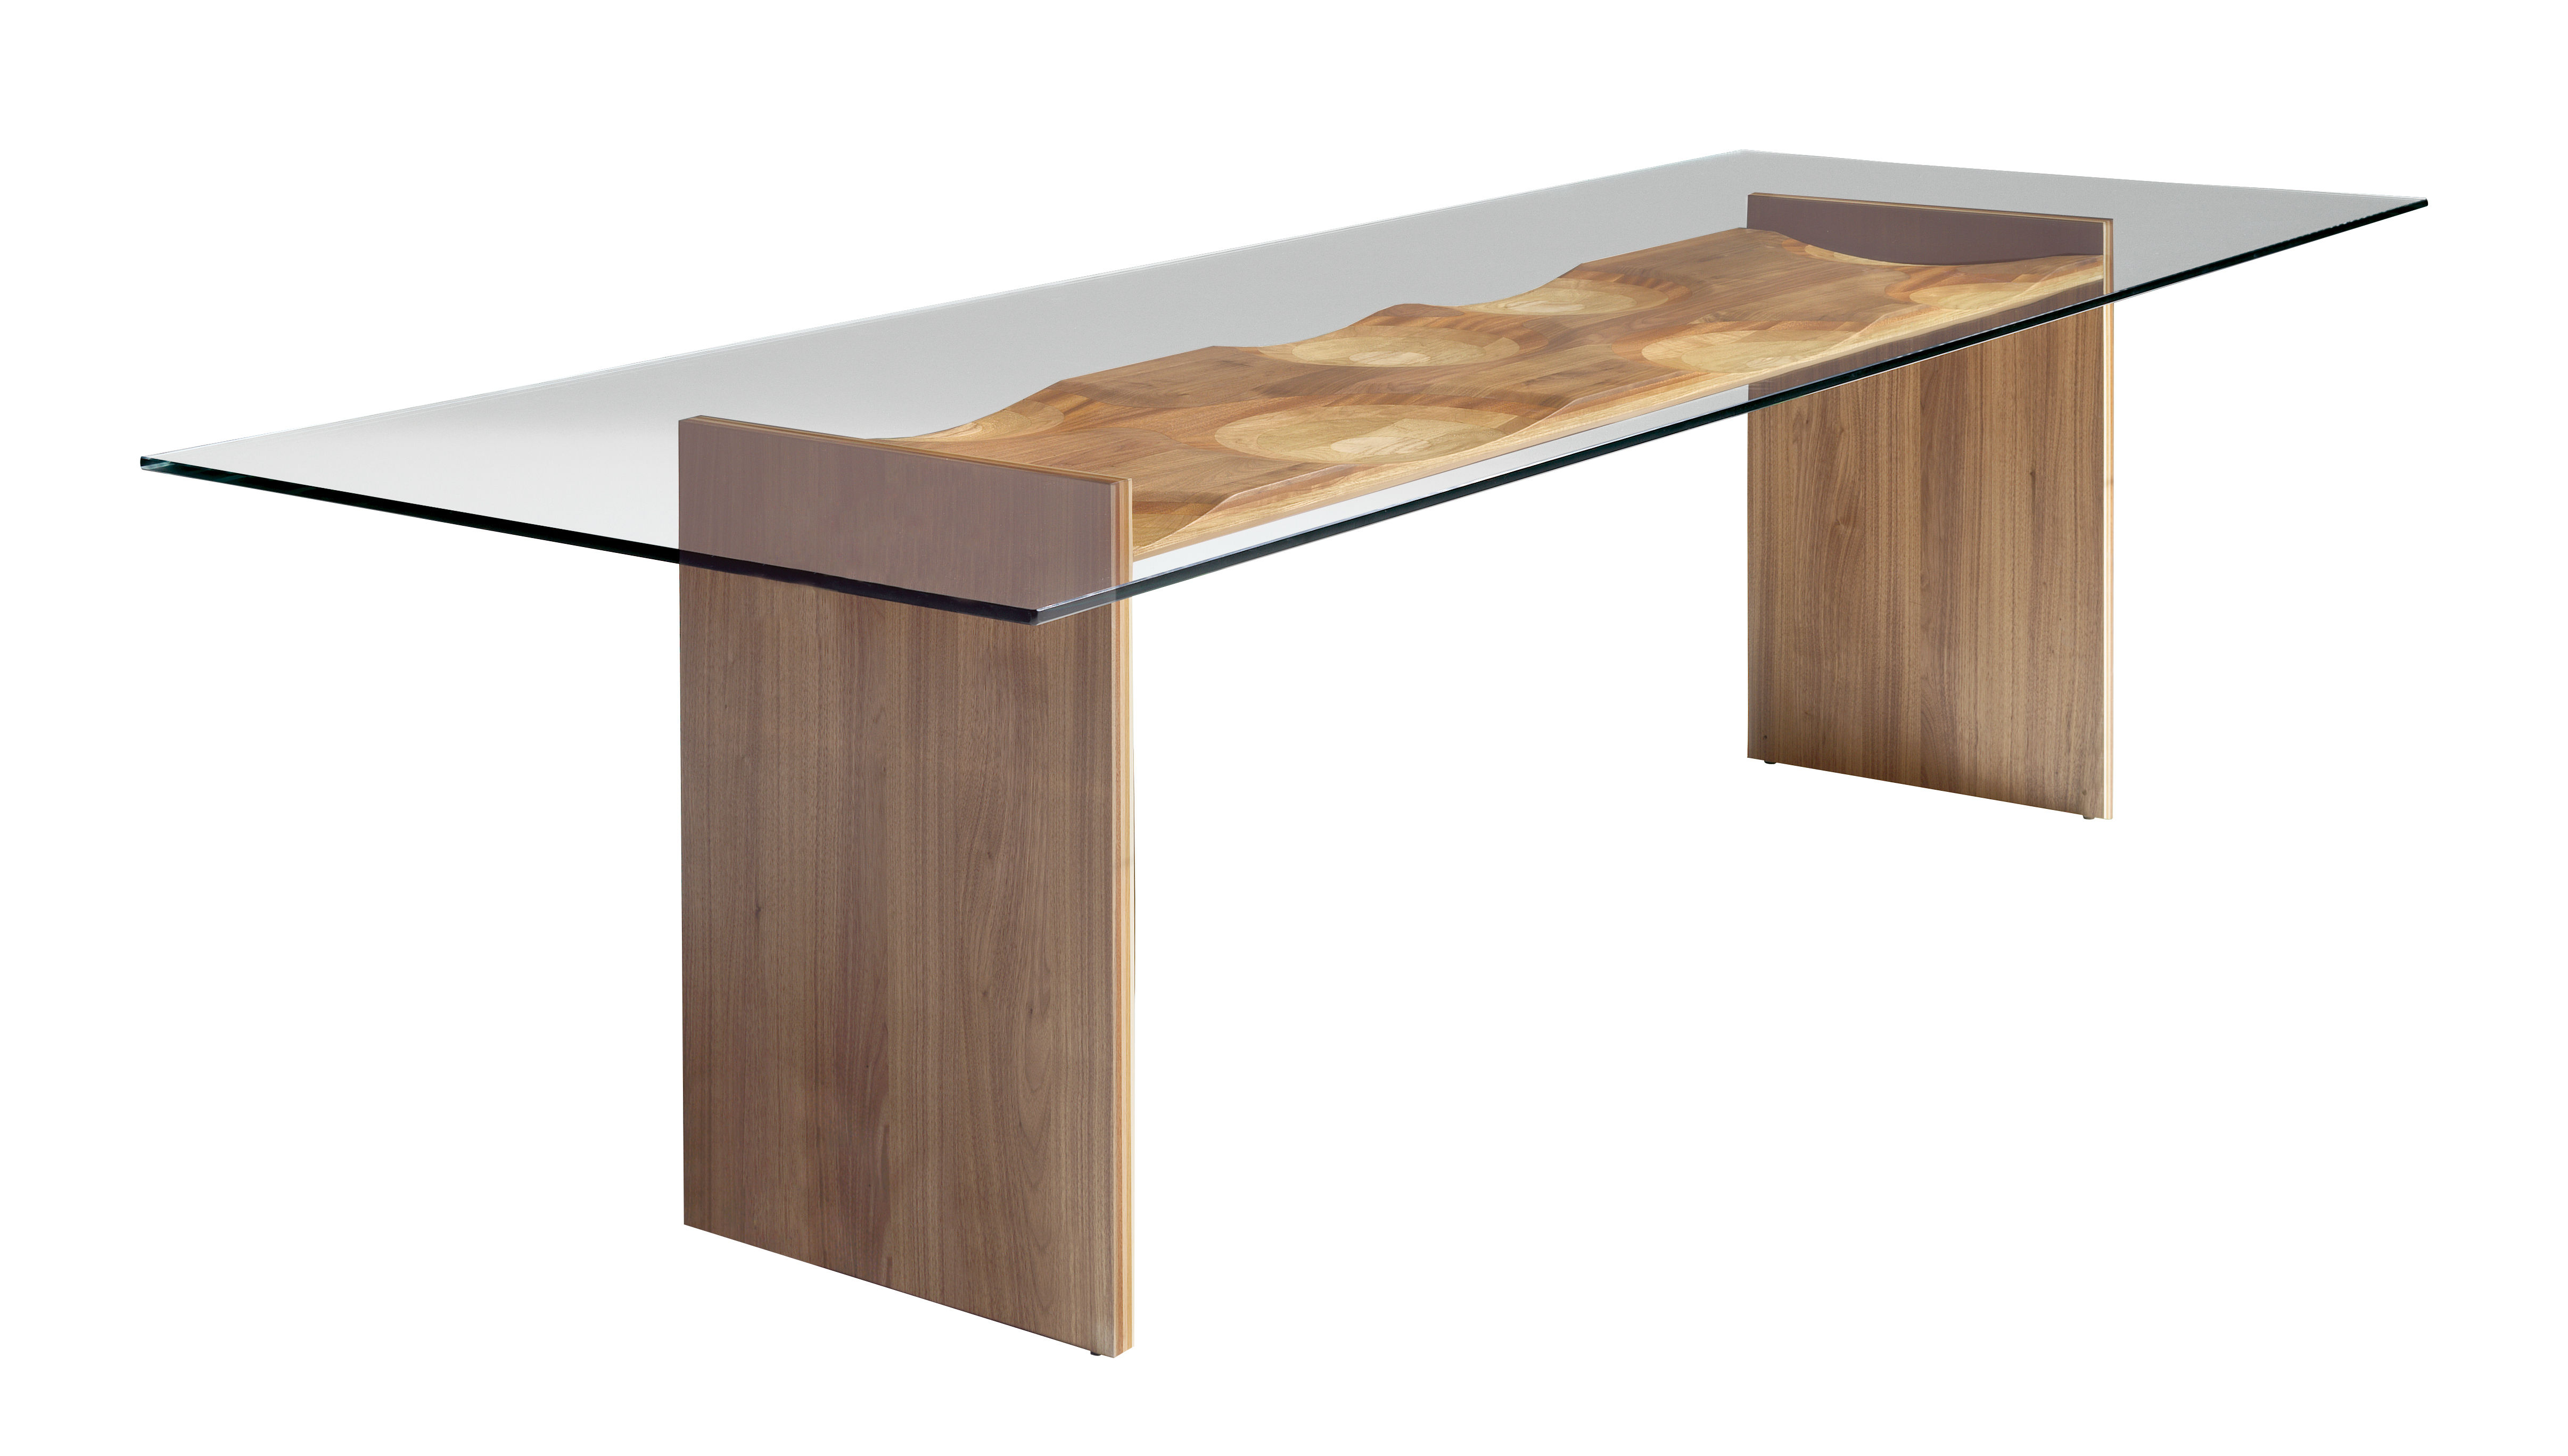 Furniture - Dining Tables - Ripples Rectangular table - 250 x 100 cm - Wood & glass by Horm - Transparent / Wood - Glass, Plywood